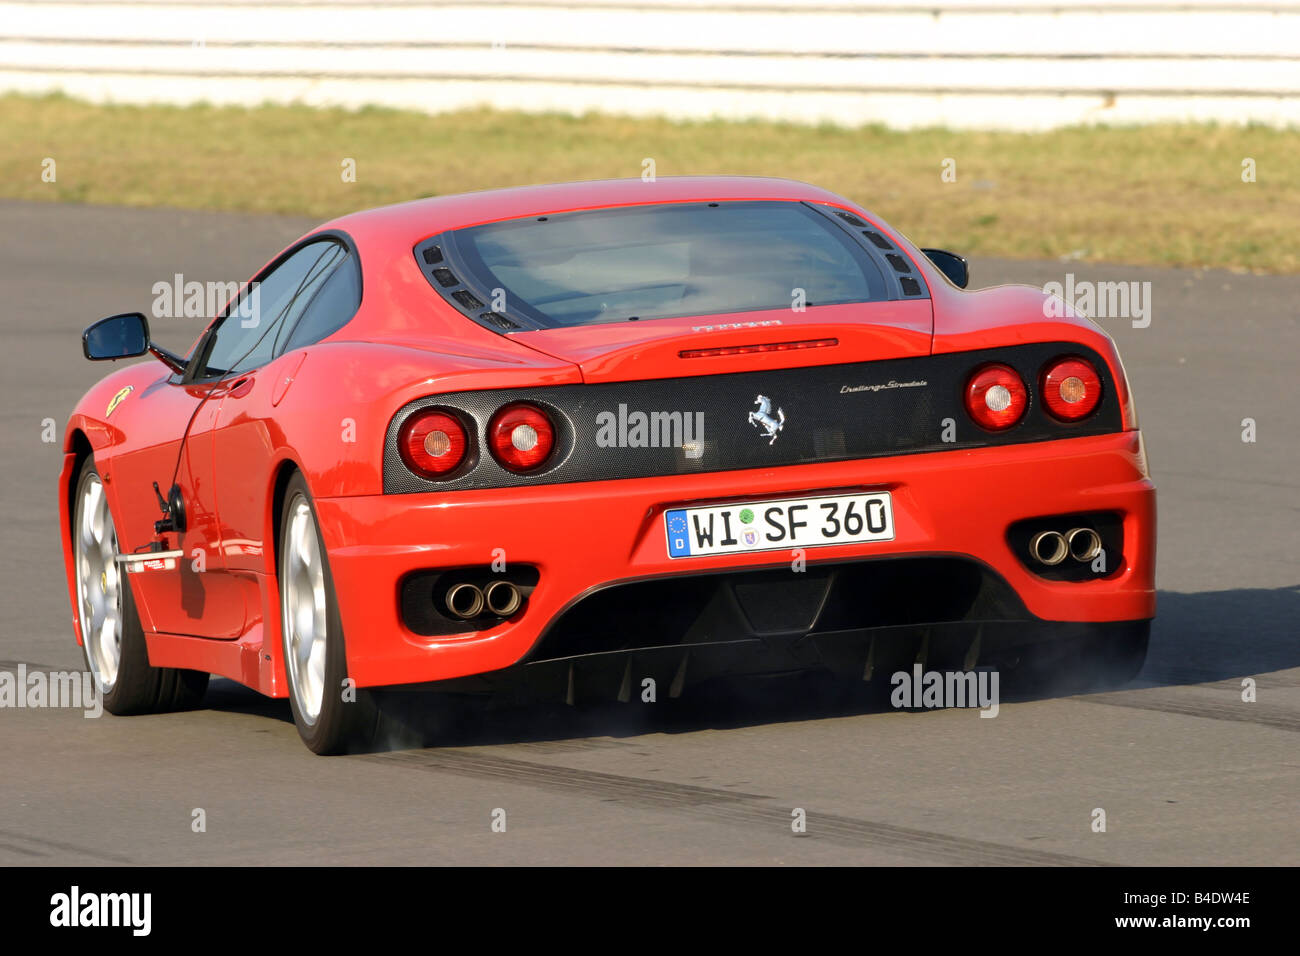 Car Ferrari 360 Challenge Stradale Roadster Coupe Coupe Red Stock Photo Alamy